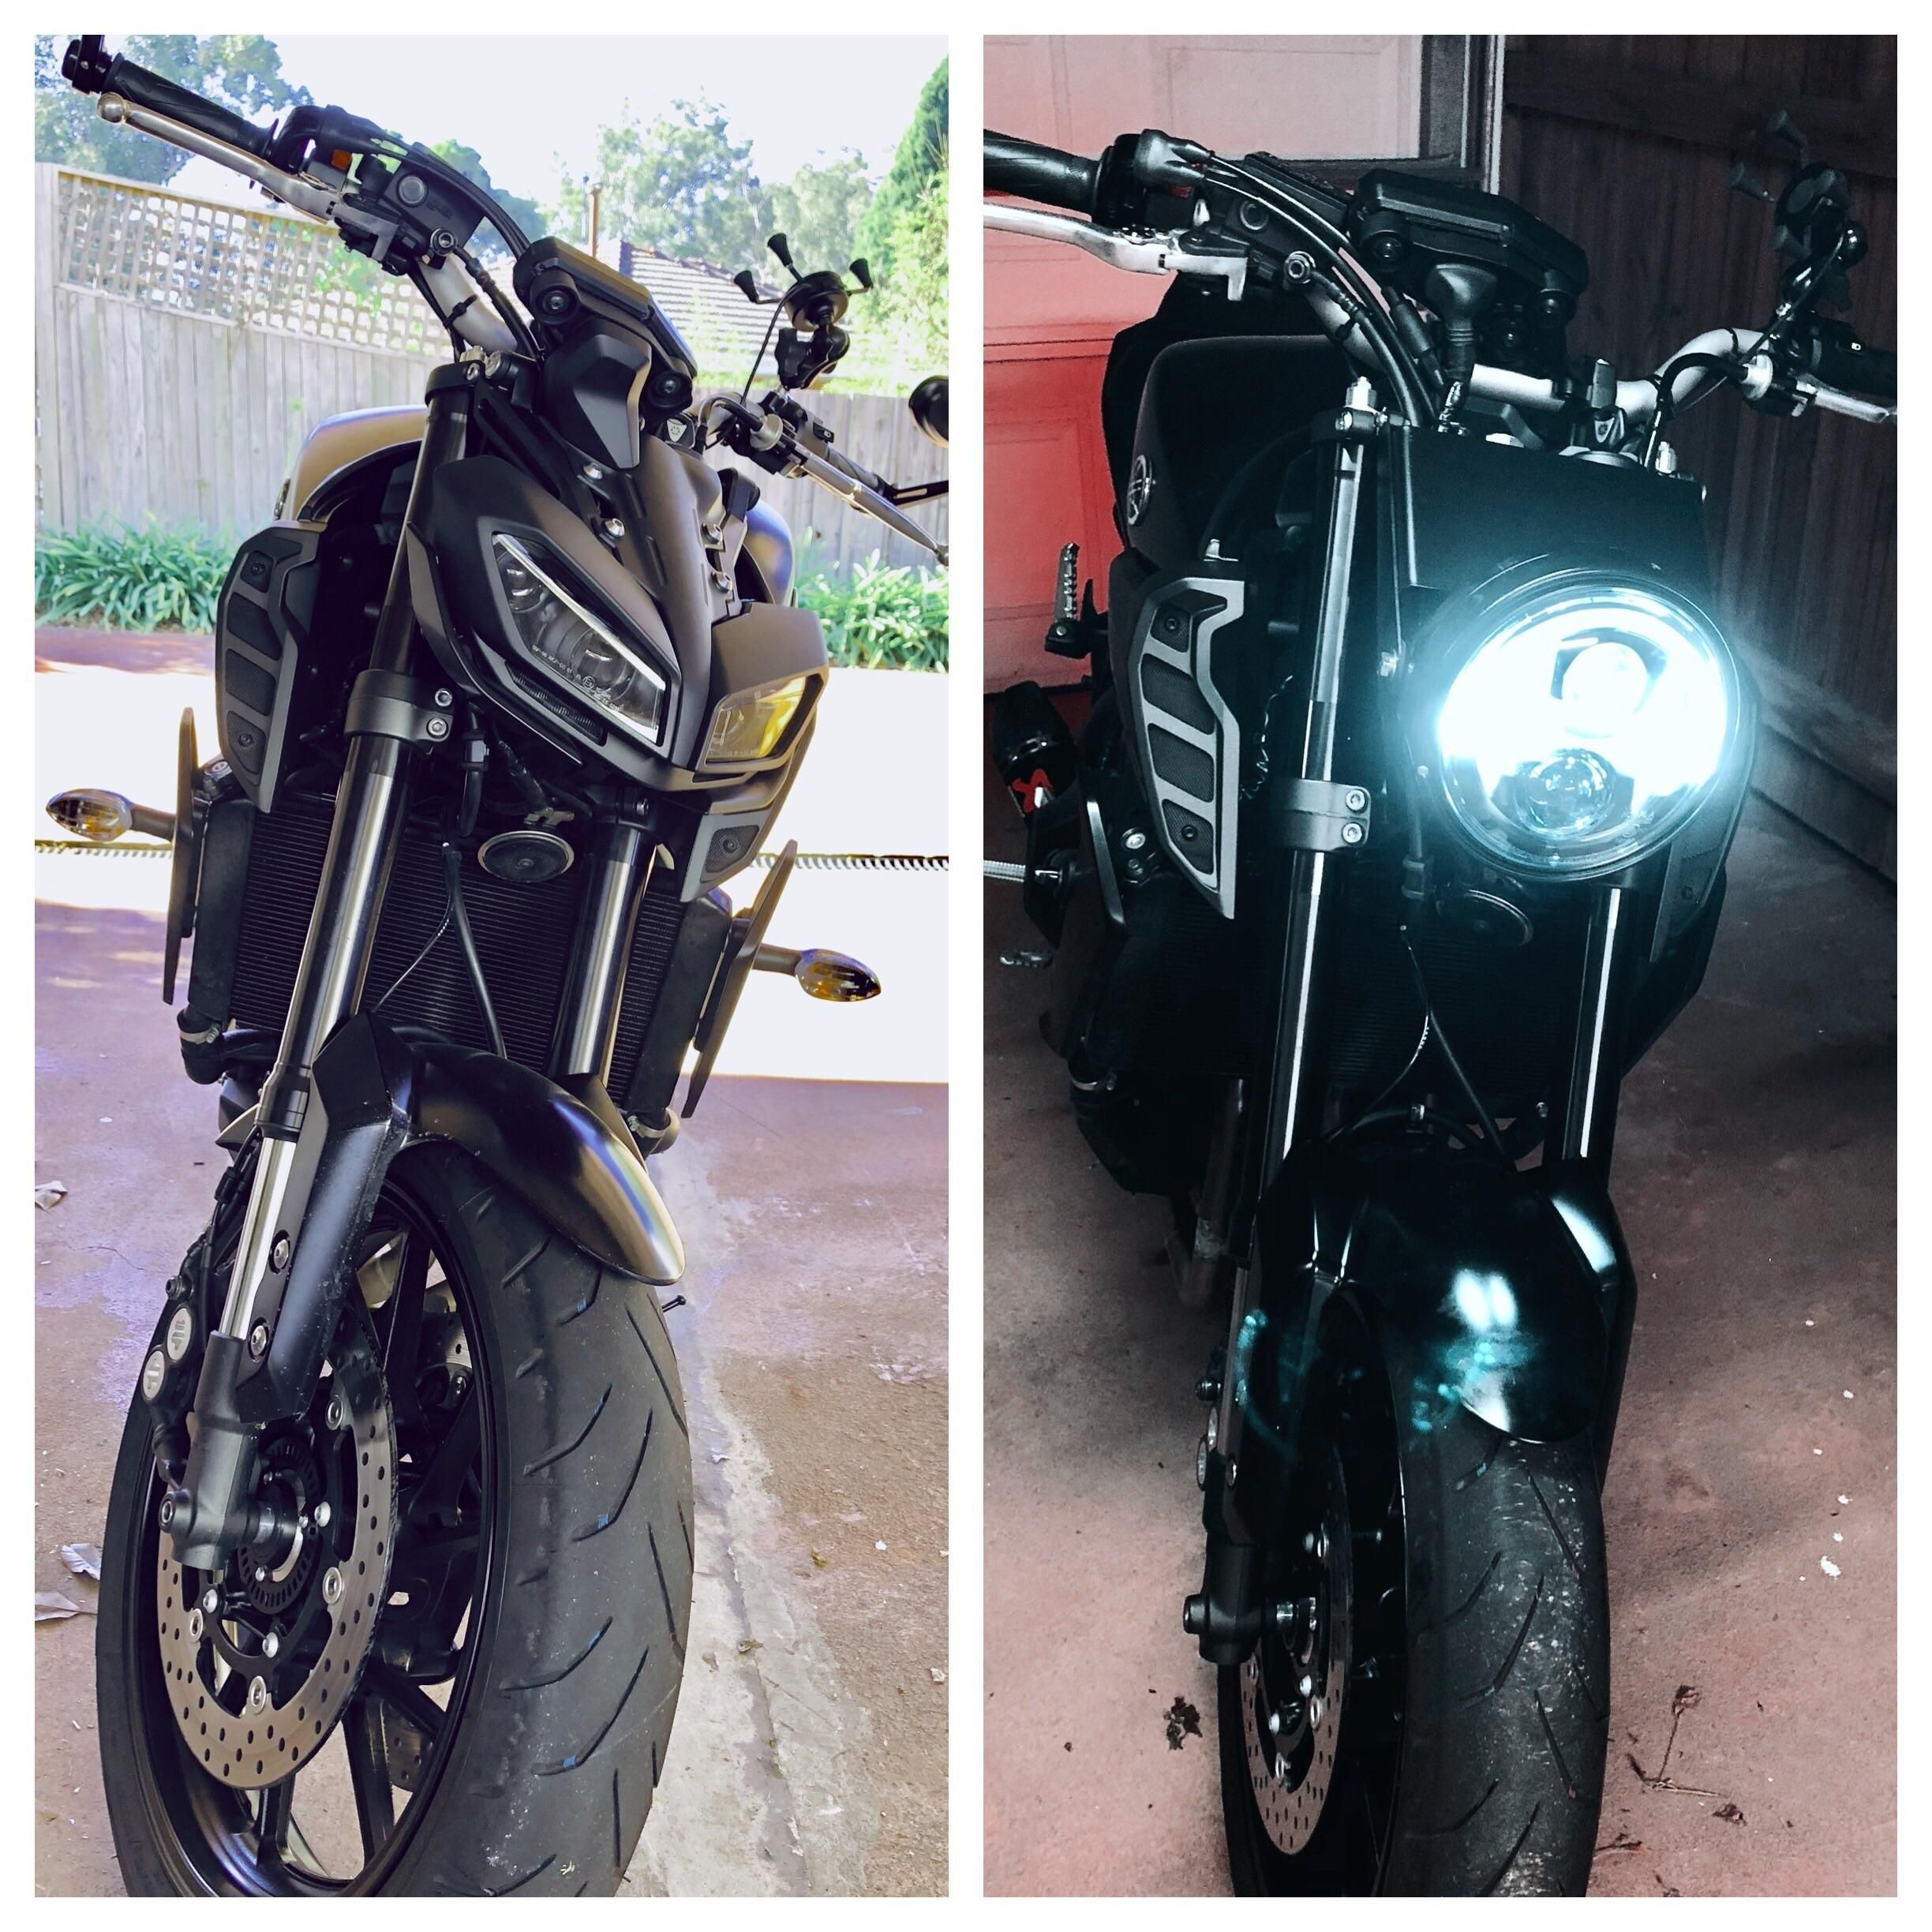 2018 Mt09 Headlight Conversion Lots Of Work But Classy Af